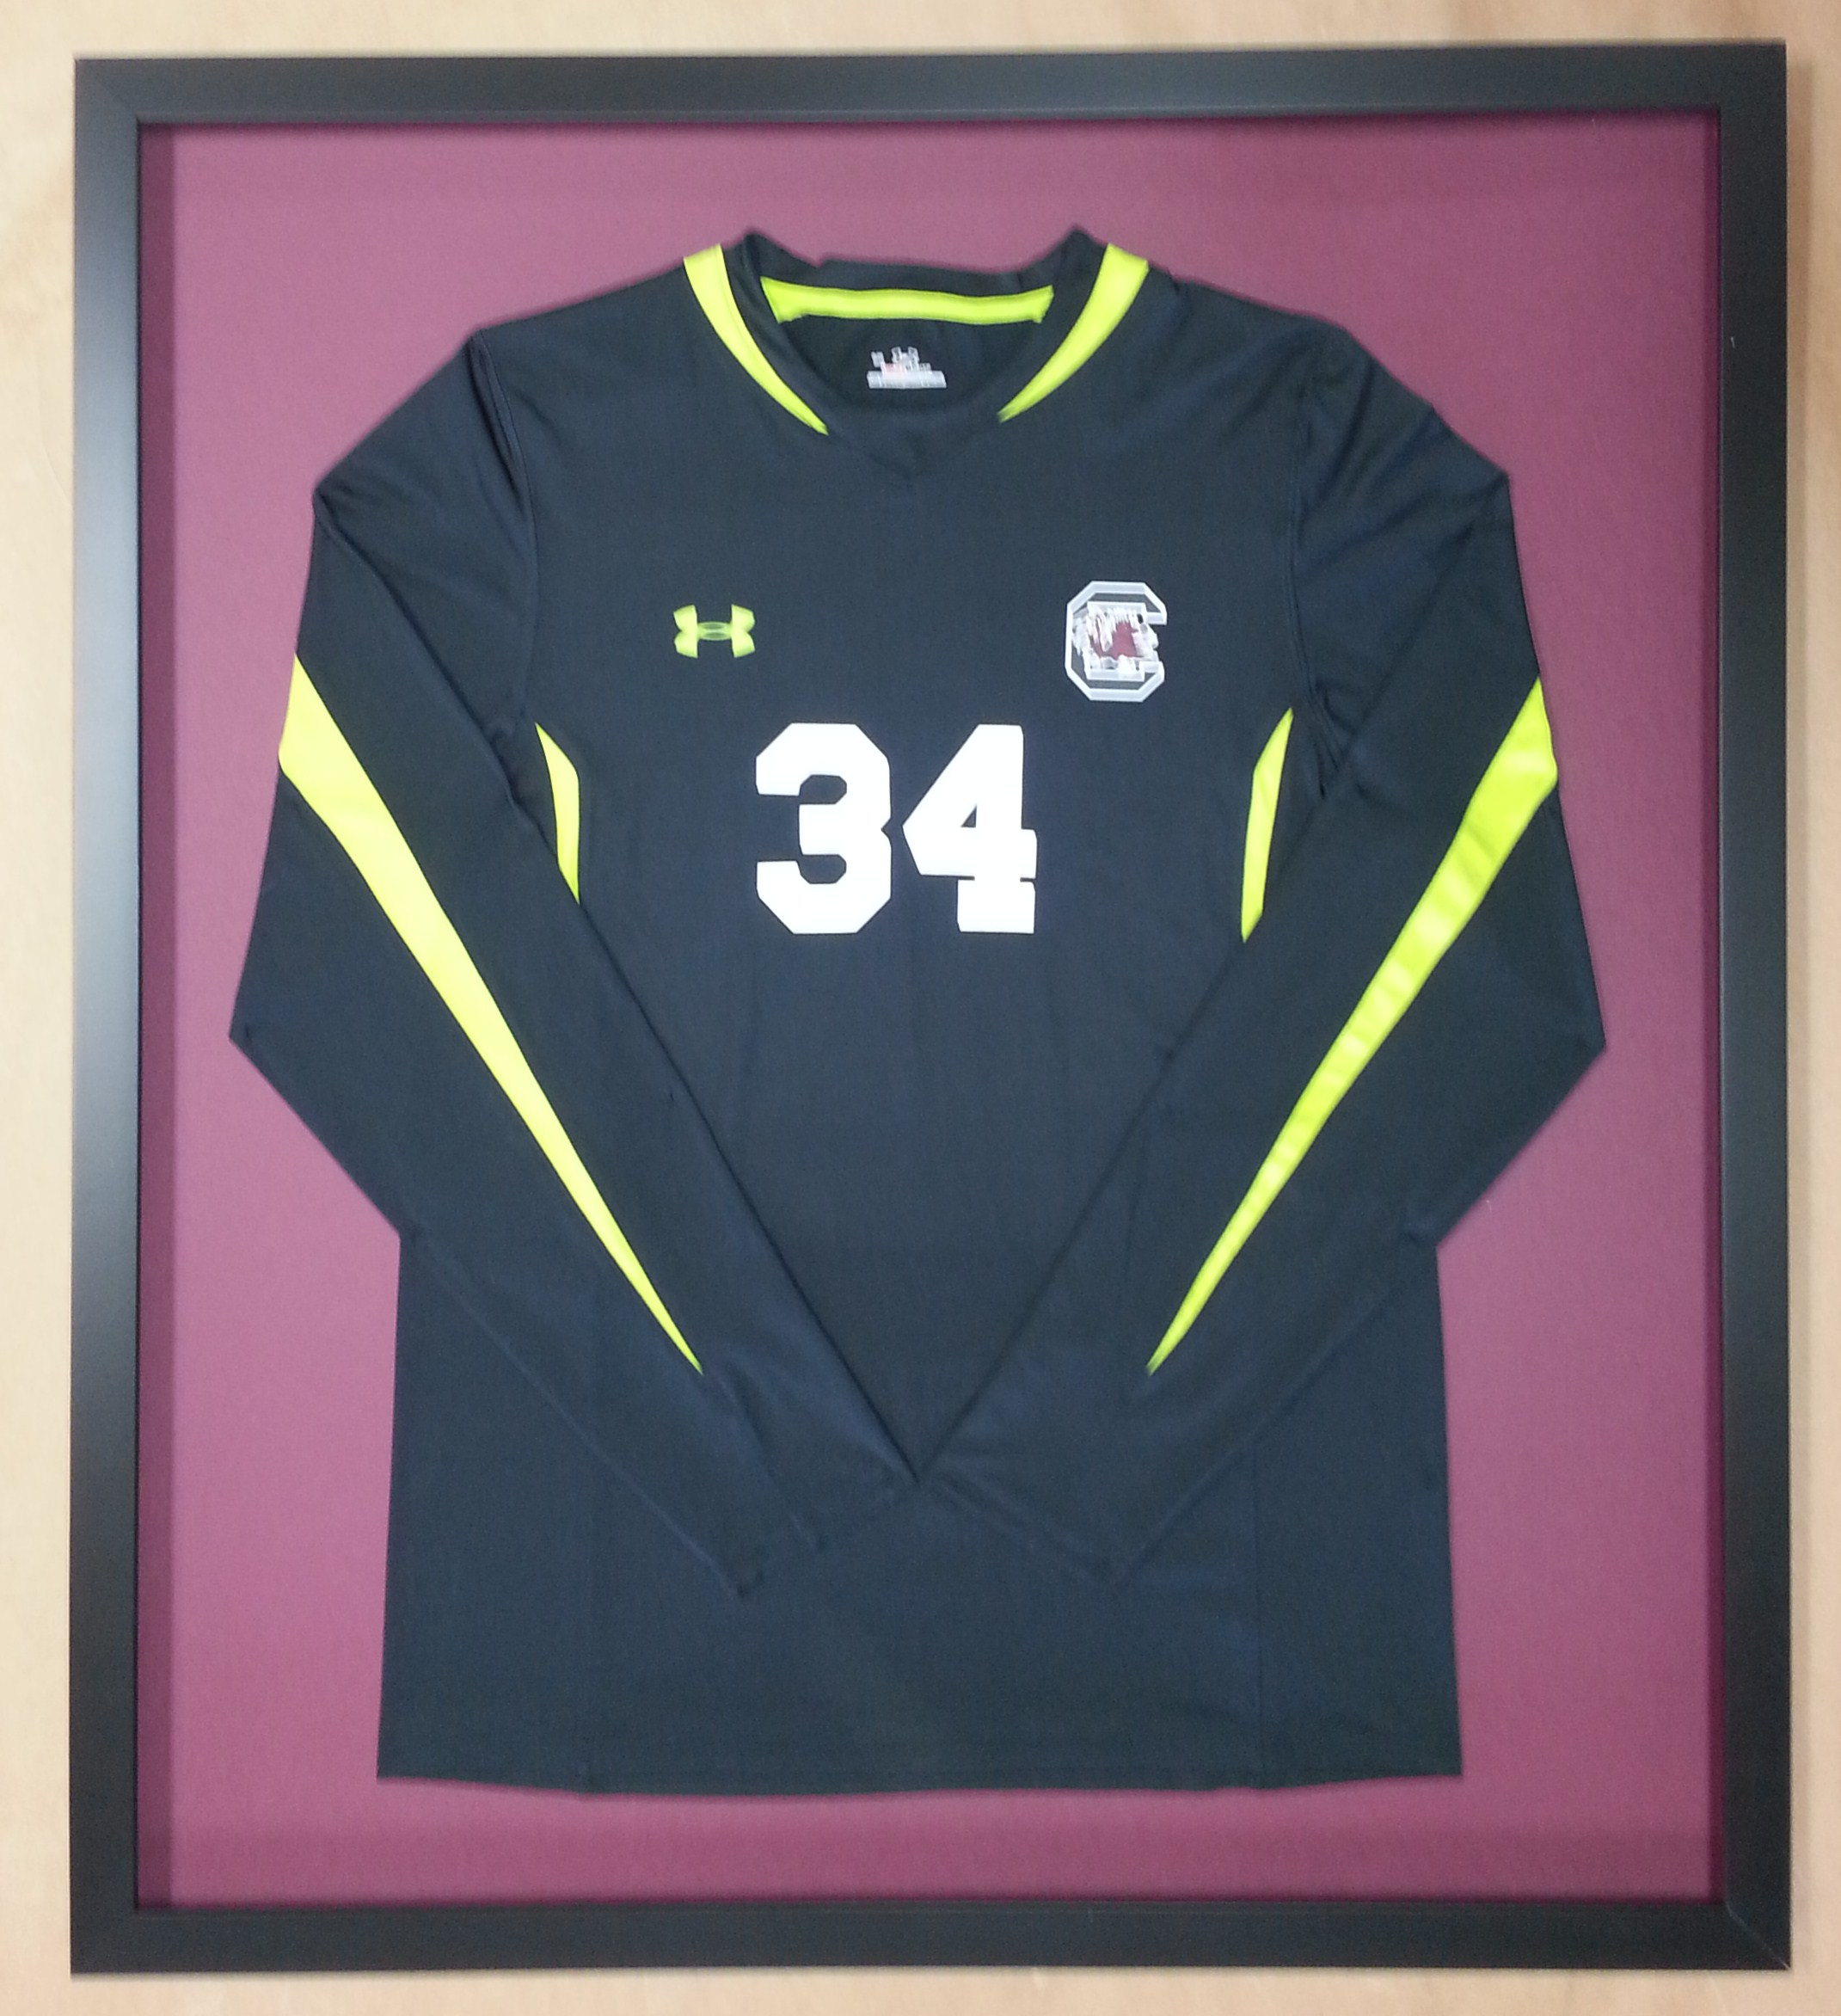 Framed soccer jersey page 2 columbia frame shop love us some gamecocks jeuxipadfo Gallery